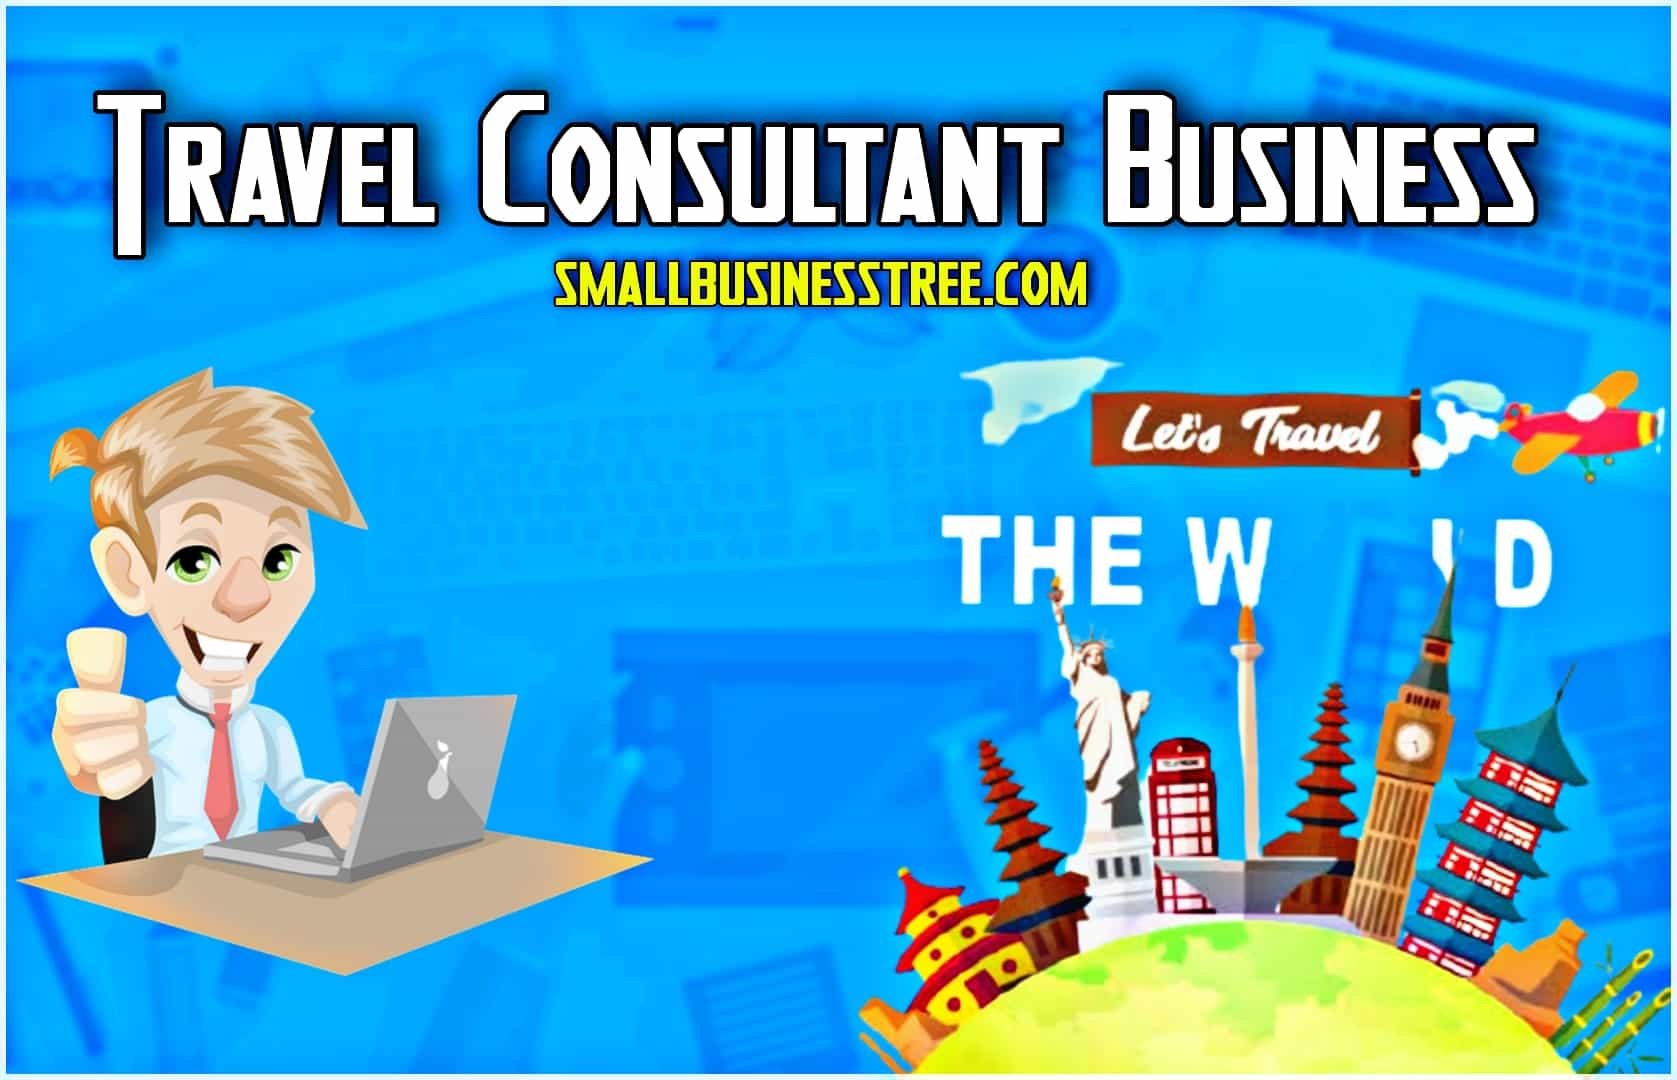 Travel Consultant Business in USA